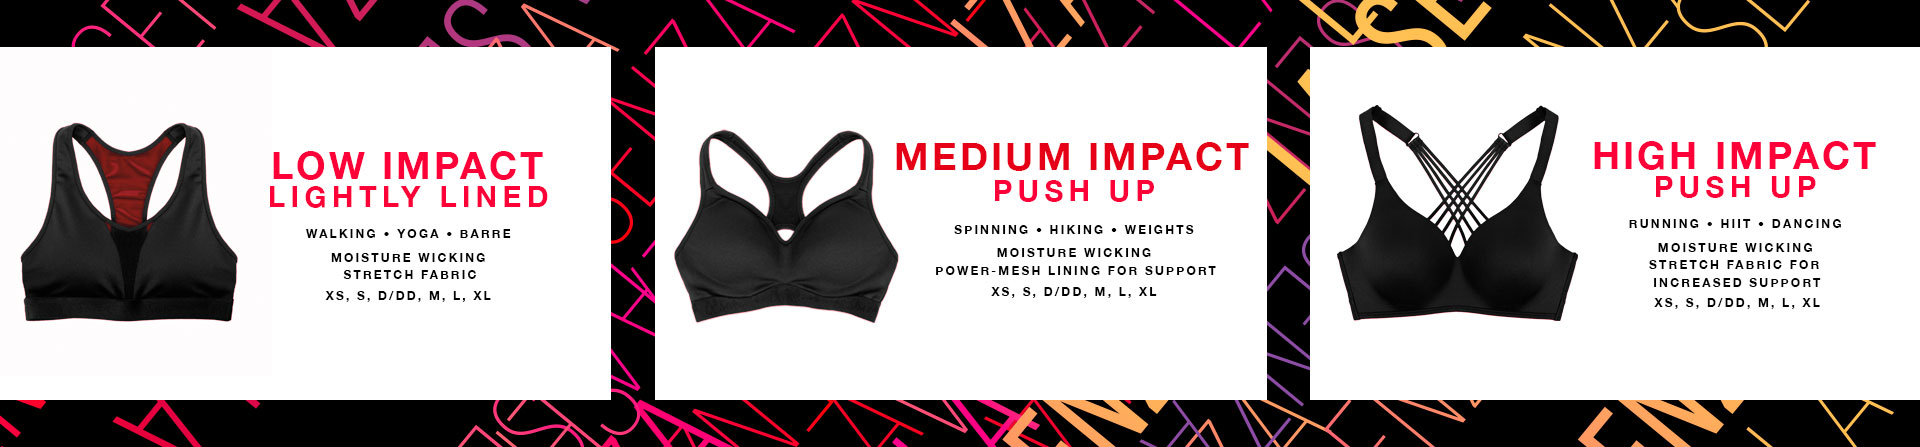 Low Impact - Lightly lined. Walking, Yoga, Barre. Moisture wicking stretch fabric. XS, S, D/DD, M, L, XL. Medium Impact - Push up. Spinning, Hiking, Weights. Moisture wicking power-mesh lining for support. XS, S, D/DD, M, L, XL. High impact push up. Running, hiit, dancing. Moisture wicking stretch fabric for increased support. XS, S, D/DD, M, L, XL.